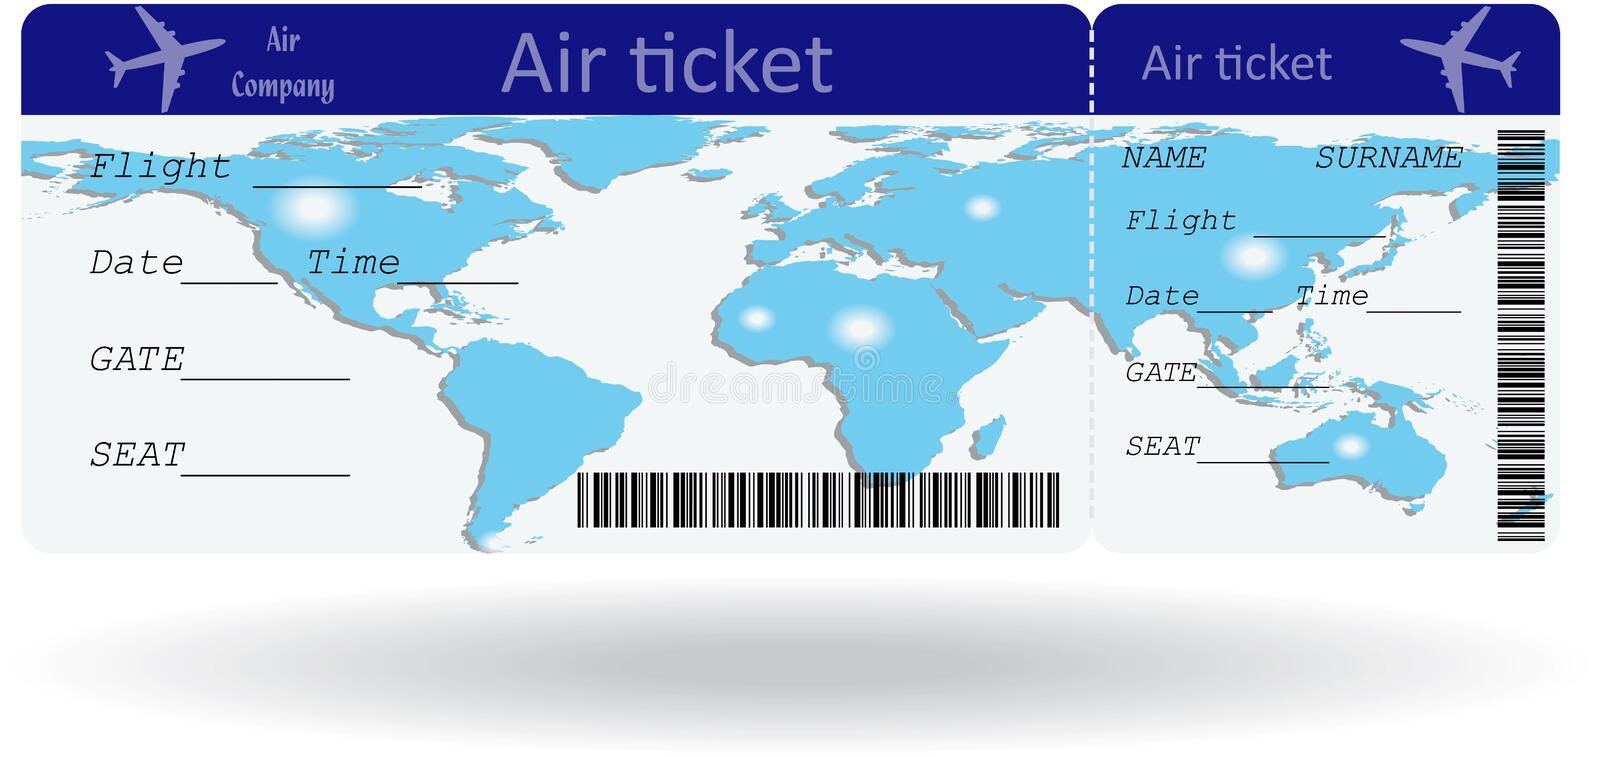 Variant Of Air Ticket Stock Vector Illustration Of Holiday